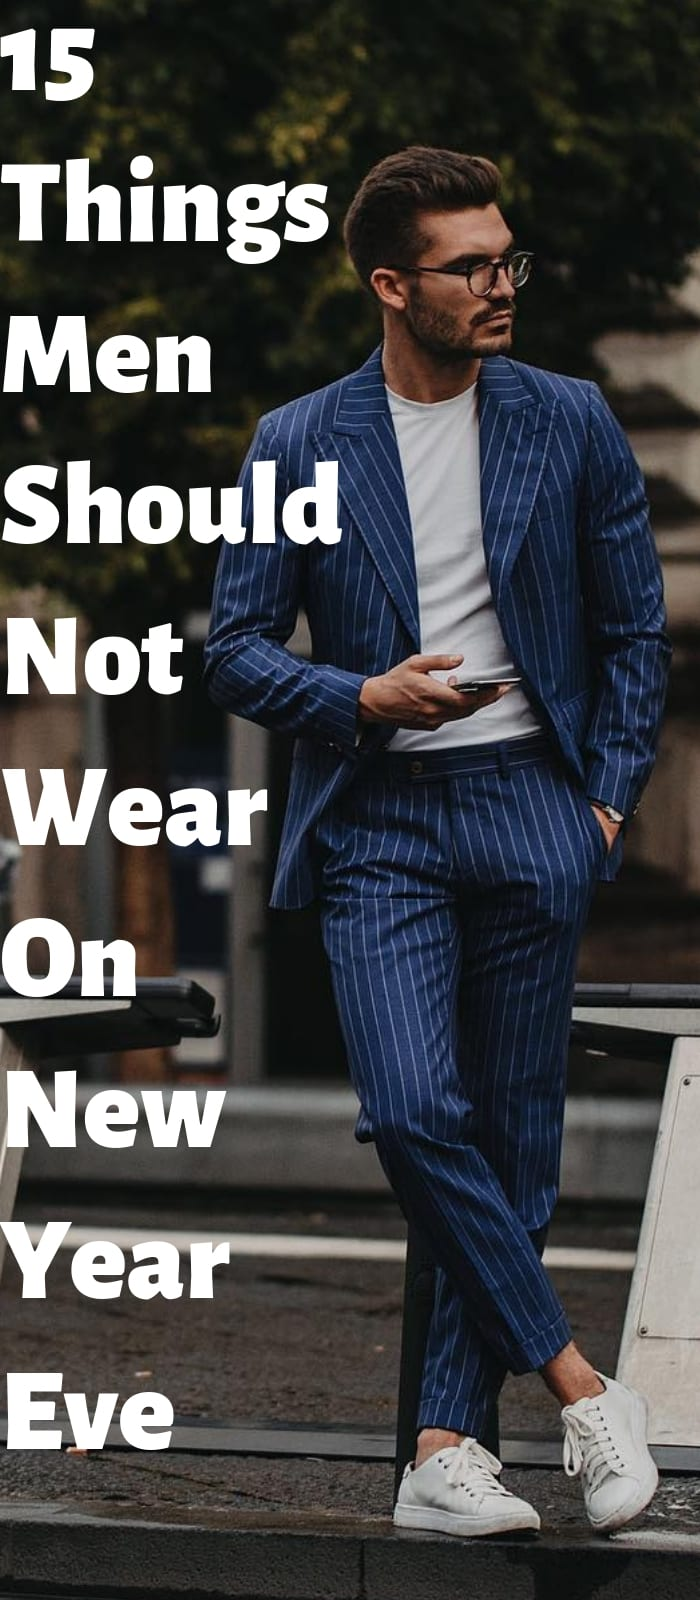 15 Things Men Should Not Wear For New Year Eve.